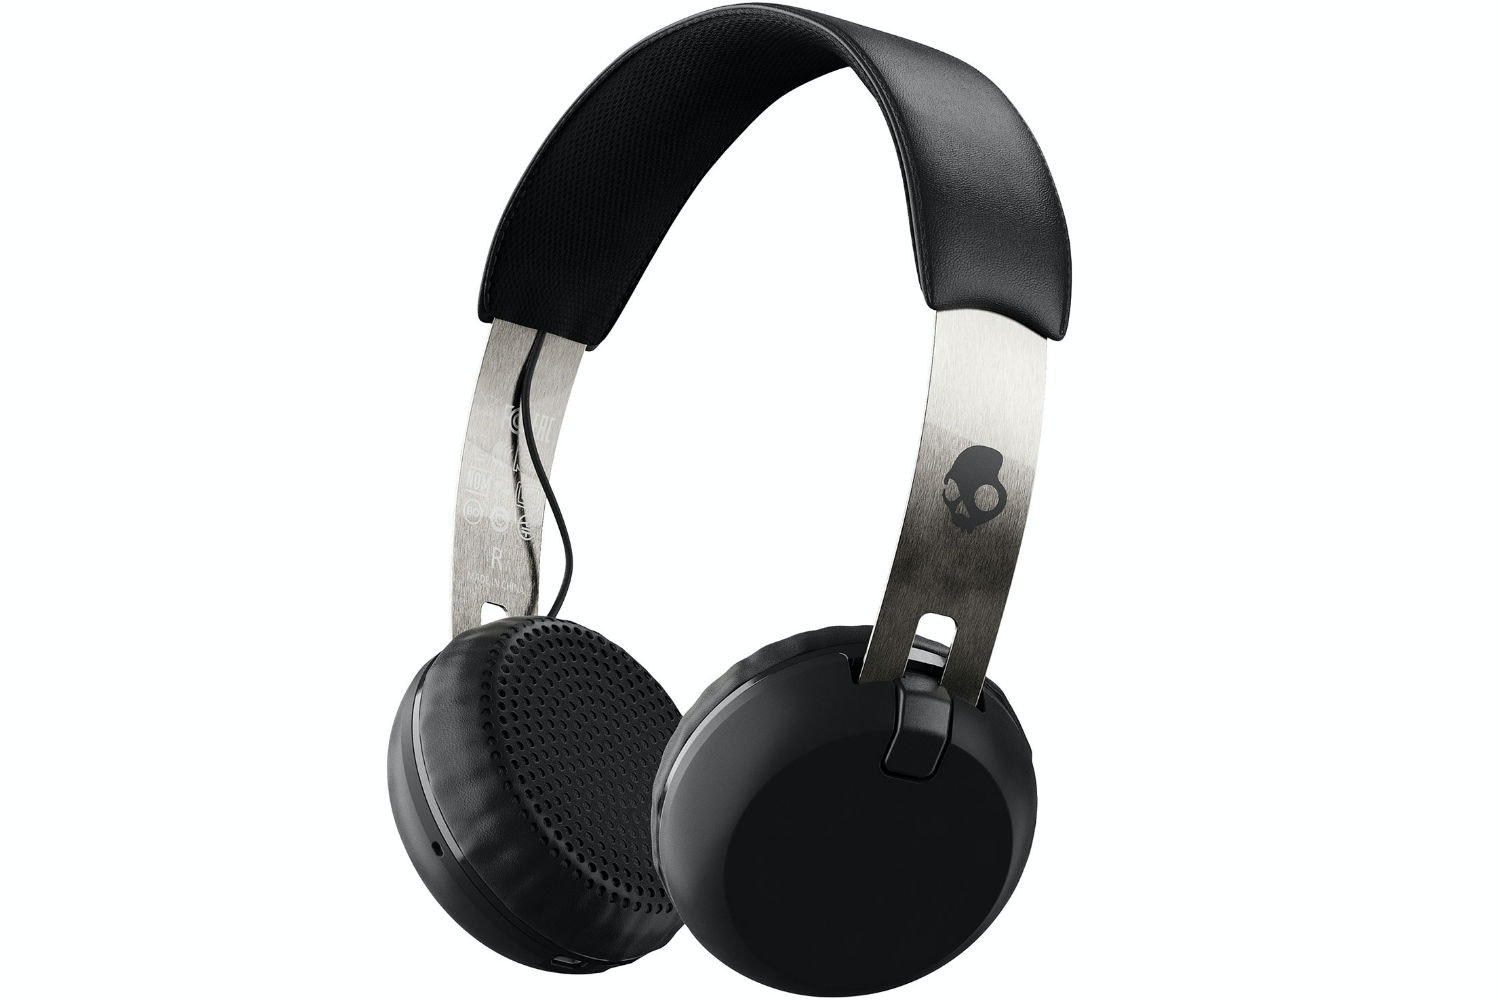 Skullcandy Grind Wireless Headphones | Black & Chrome